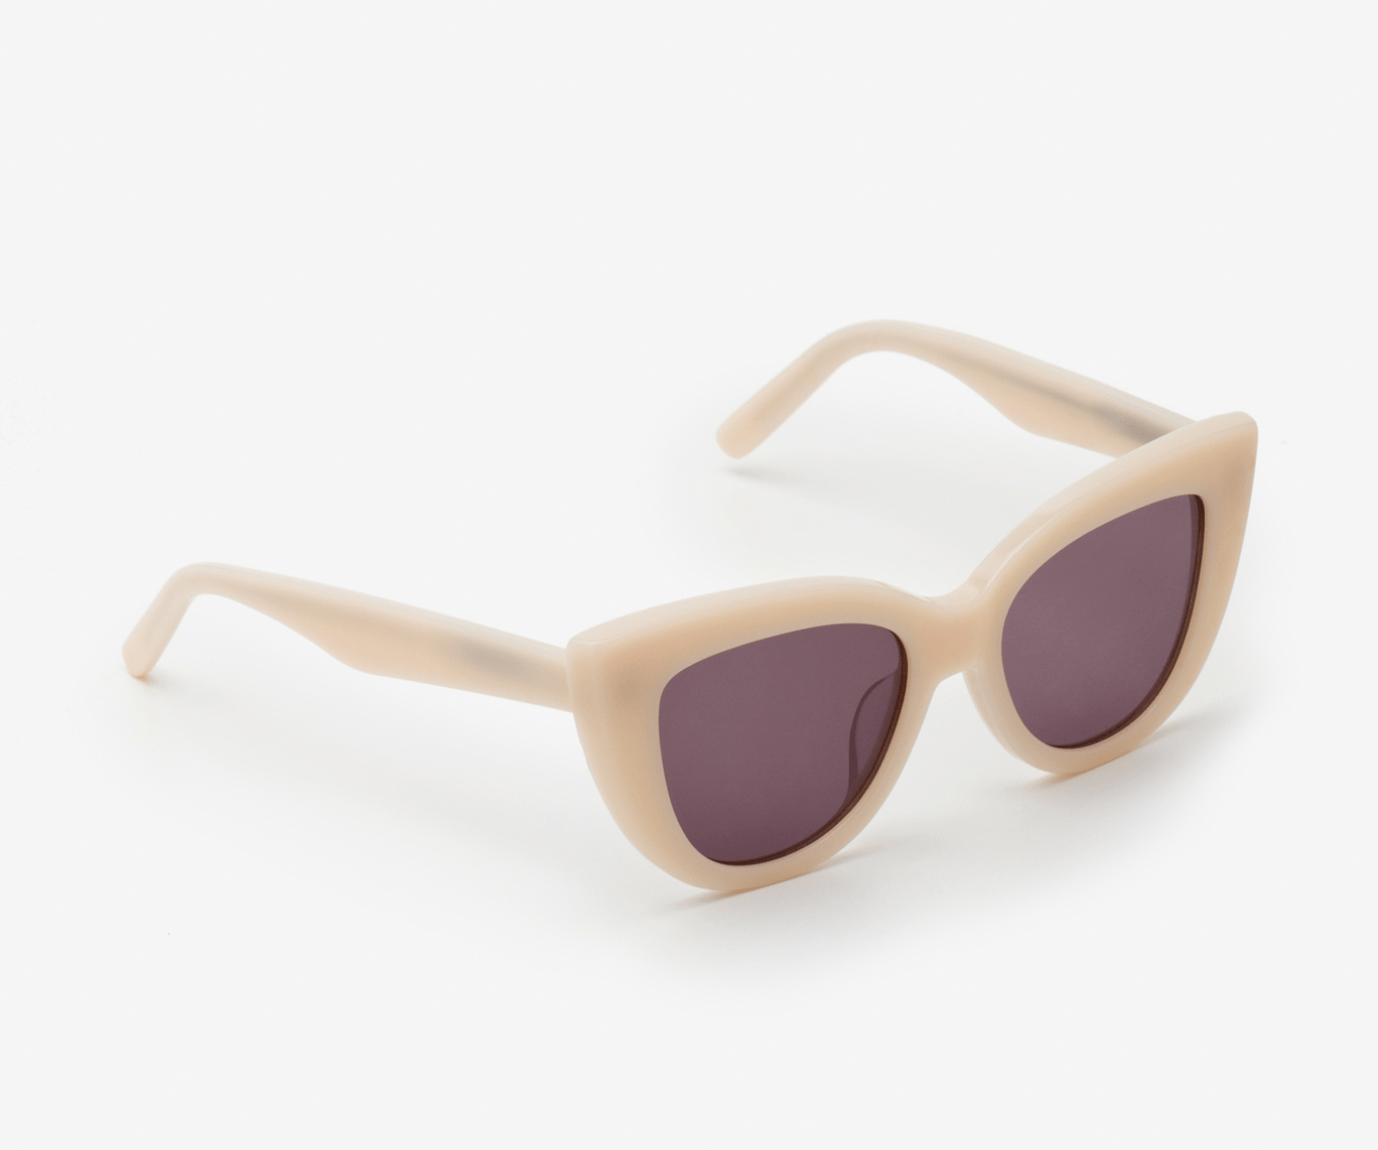 Big Sunglasses from Boden | Mum Friendly accessories for Spring | The Halcyon Years